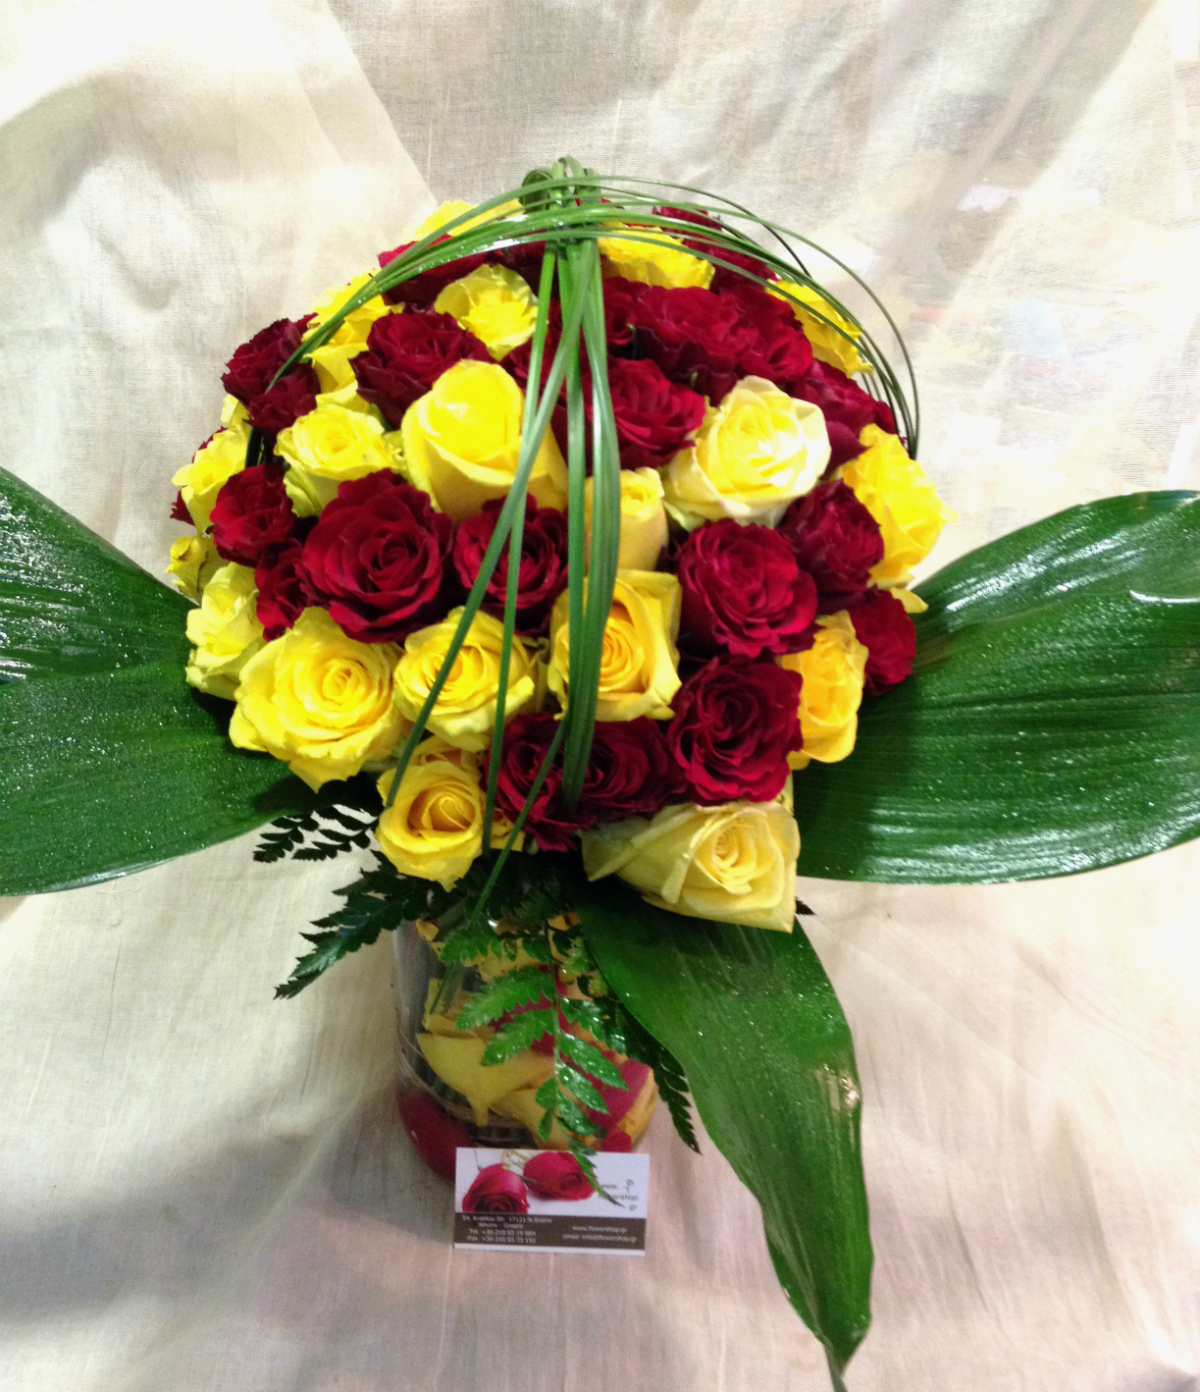 Roses 70 stems in vase with colored water and rose pedals Ecuador origin